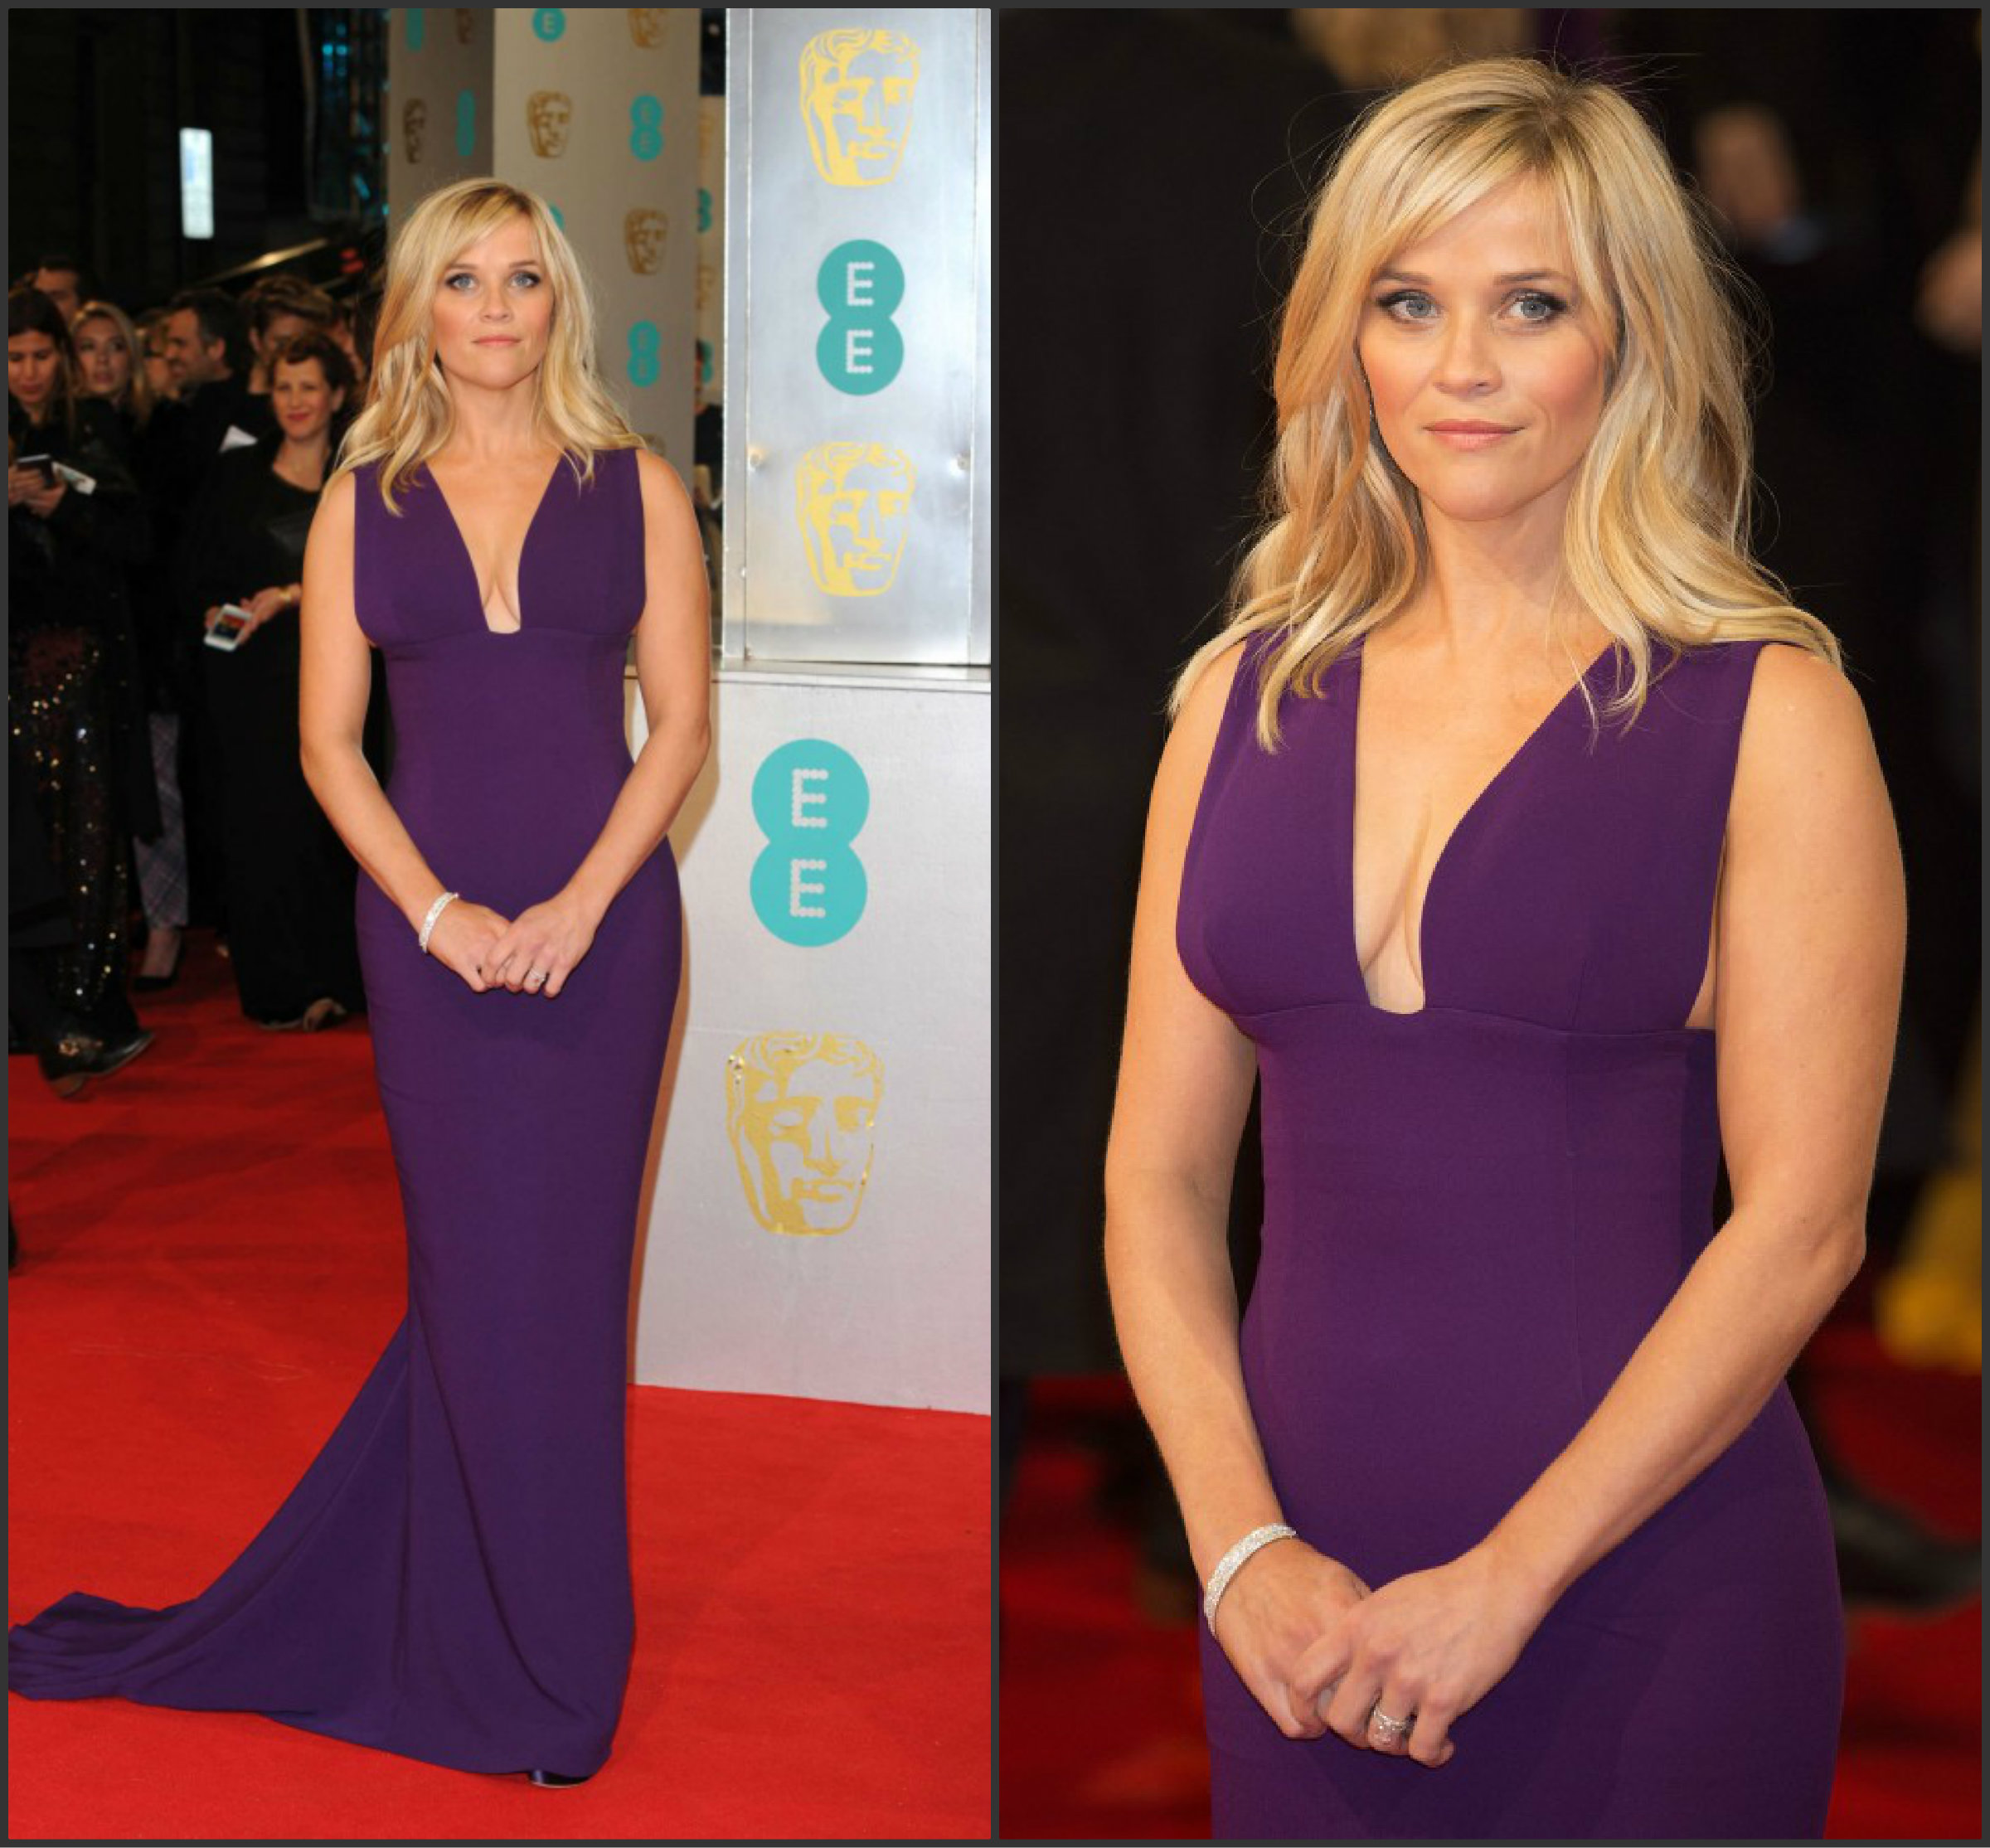 Reese-Witherspoon-in-Stella-McCartney-at-the-2015-BAFTAs